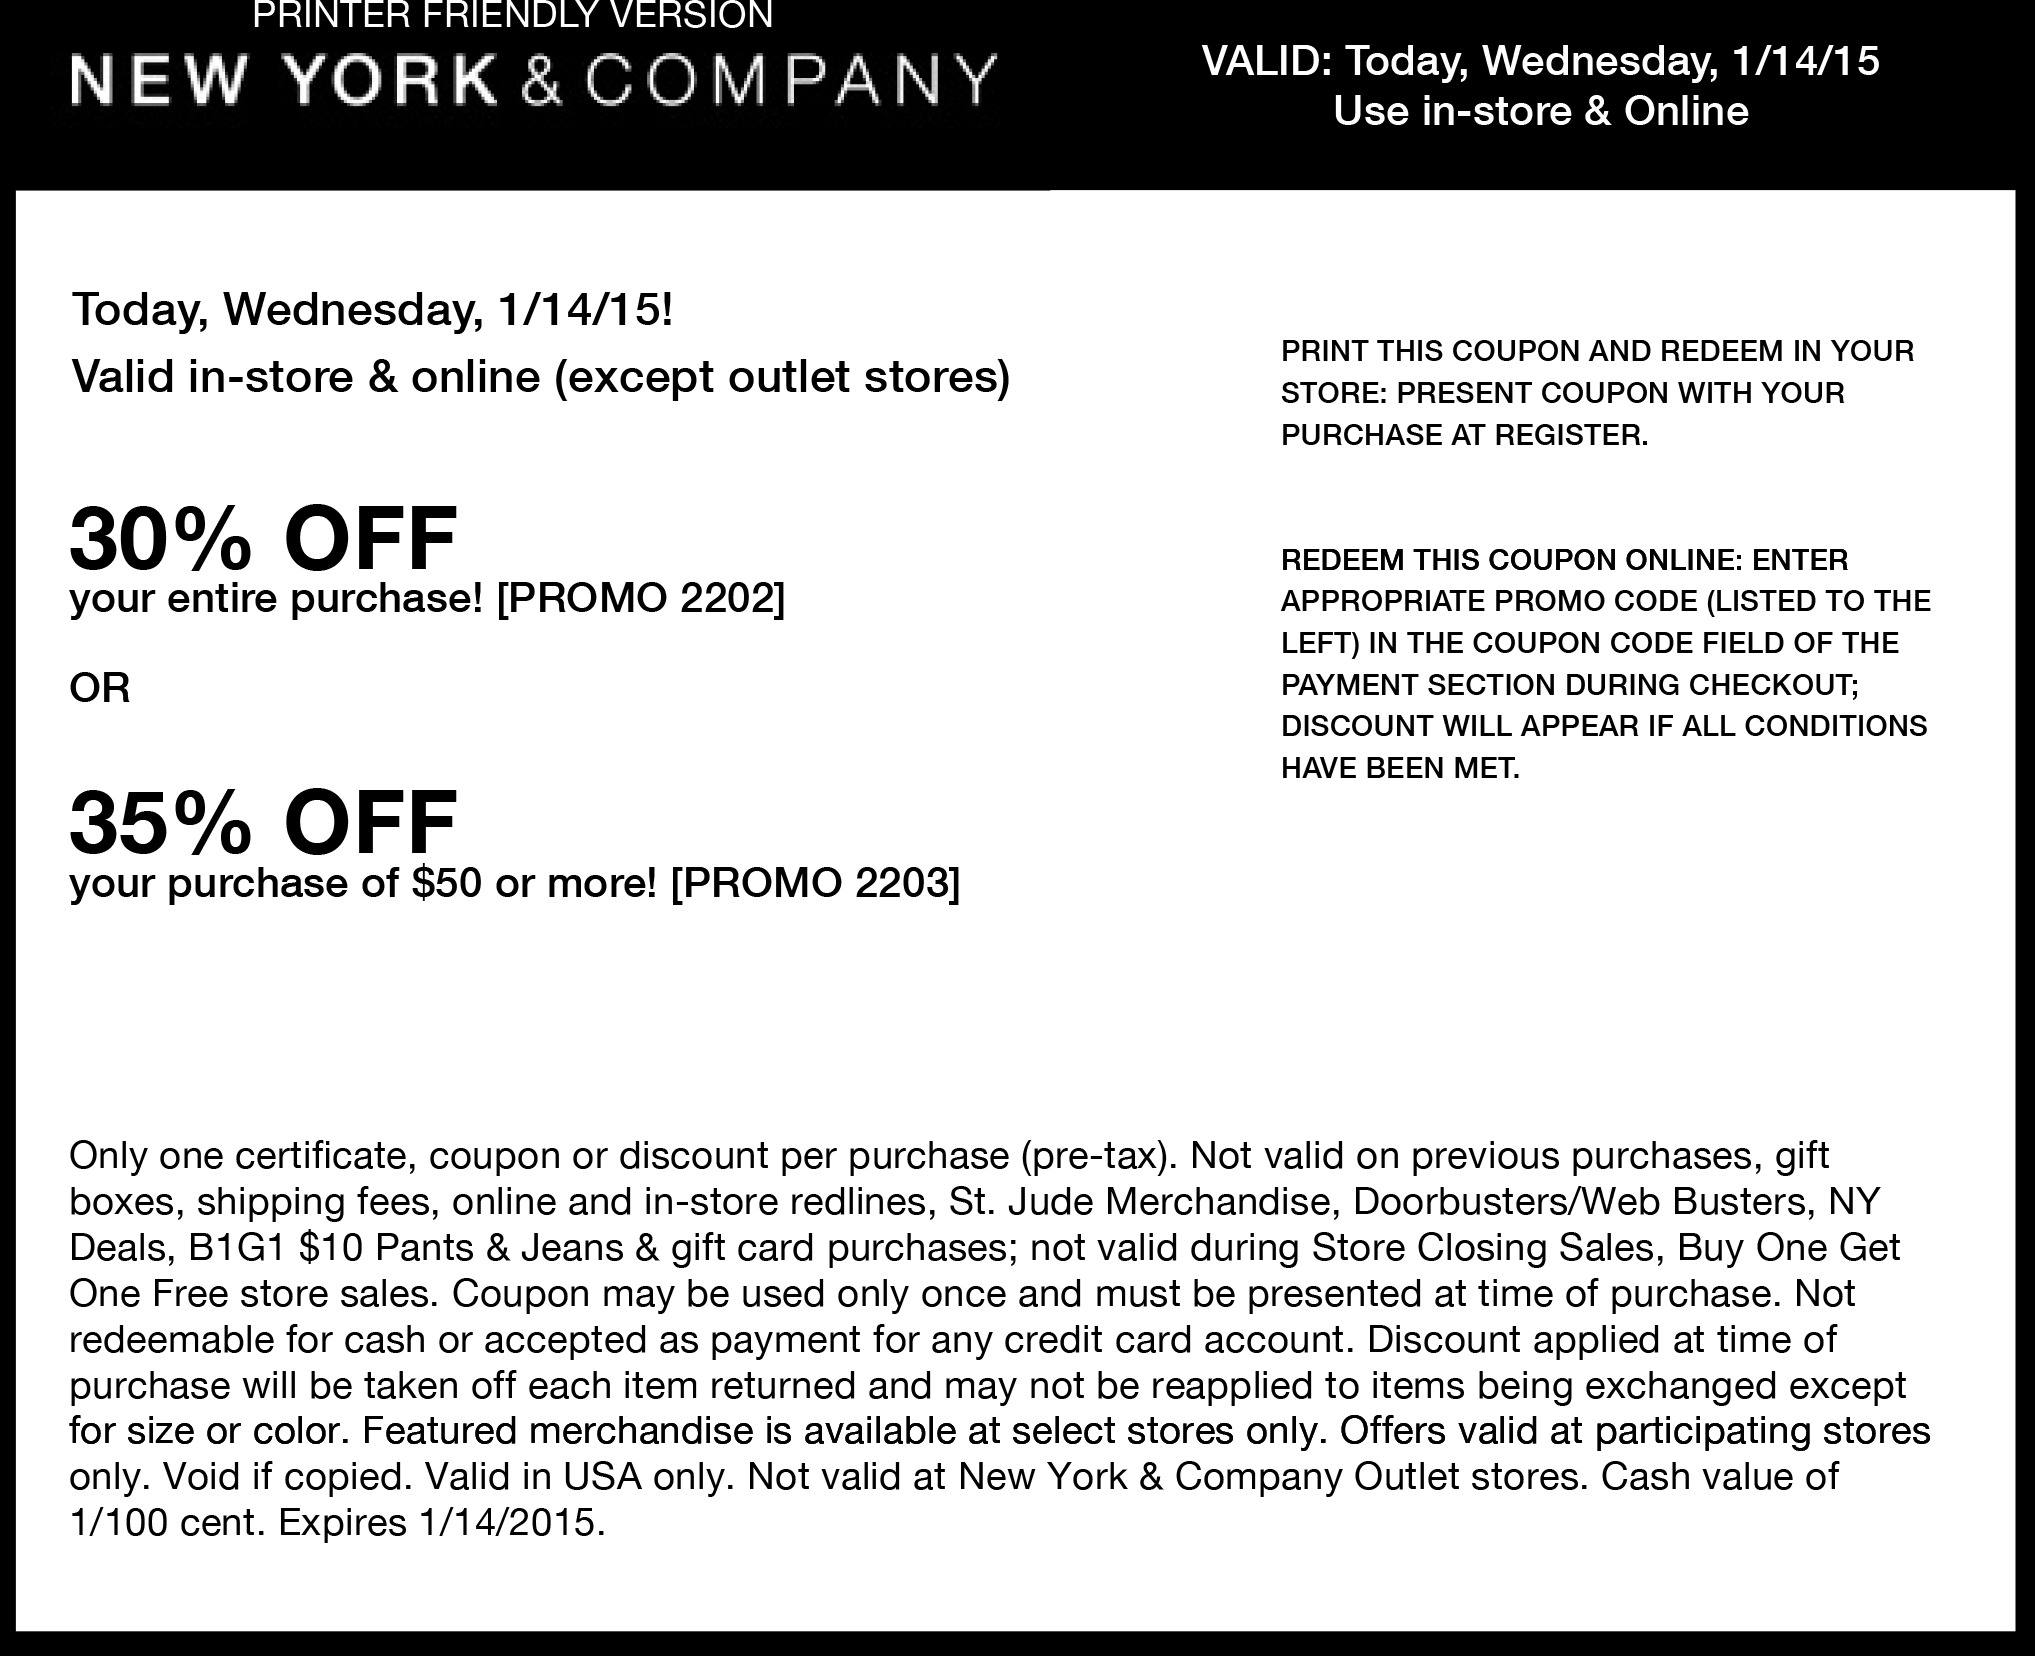 New York & Company Coupon June 2019 30-35% off today at New York & Company, or online via promo code 2202